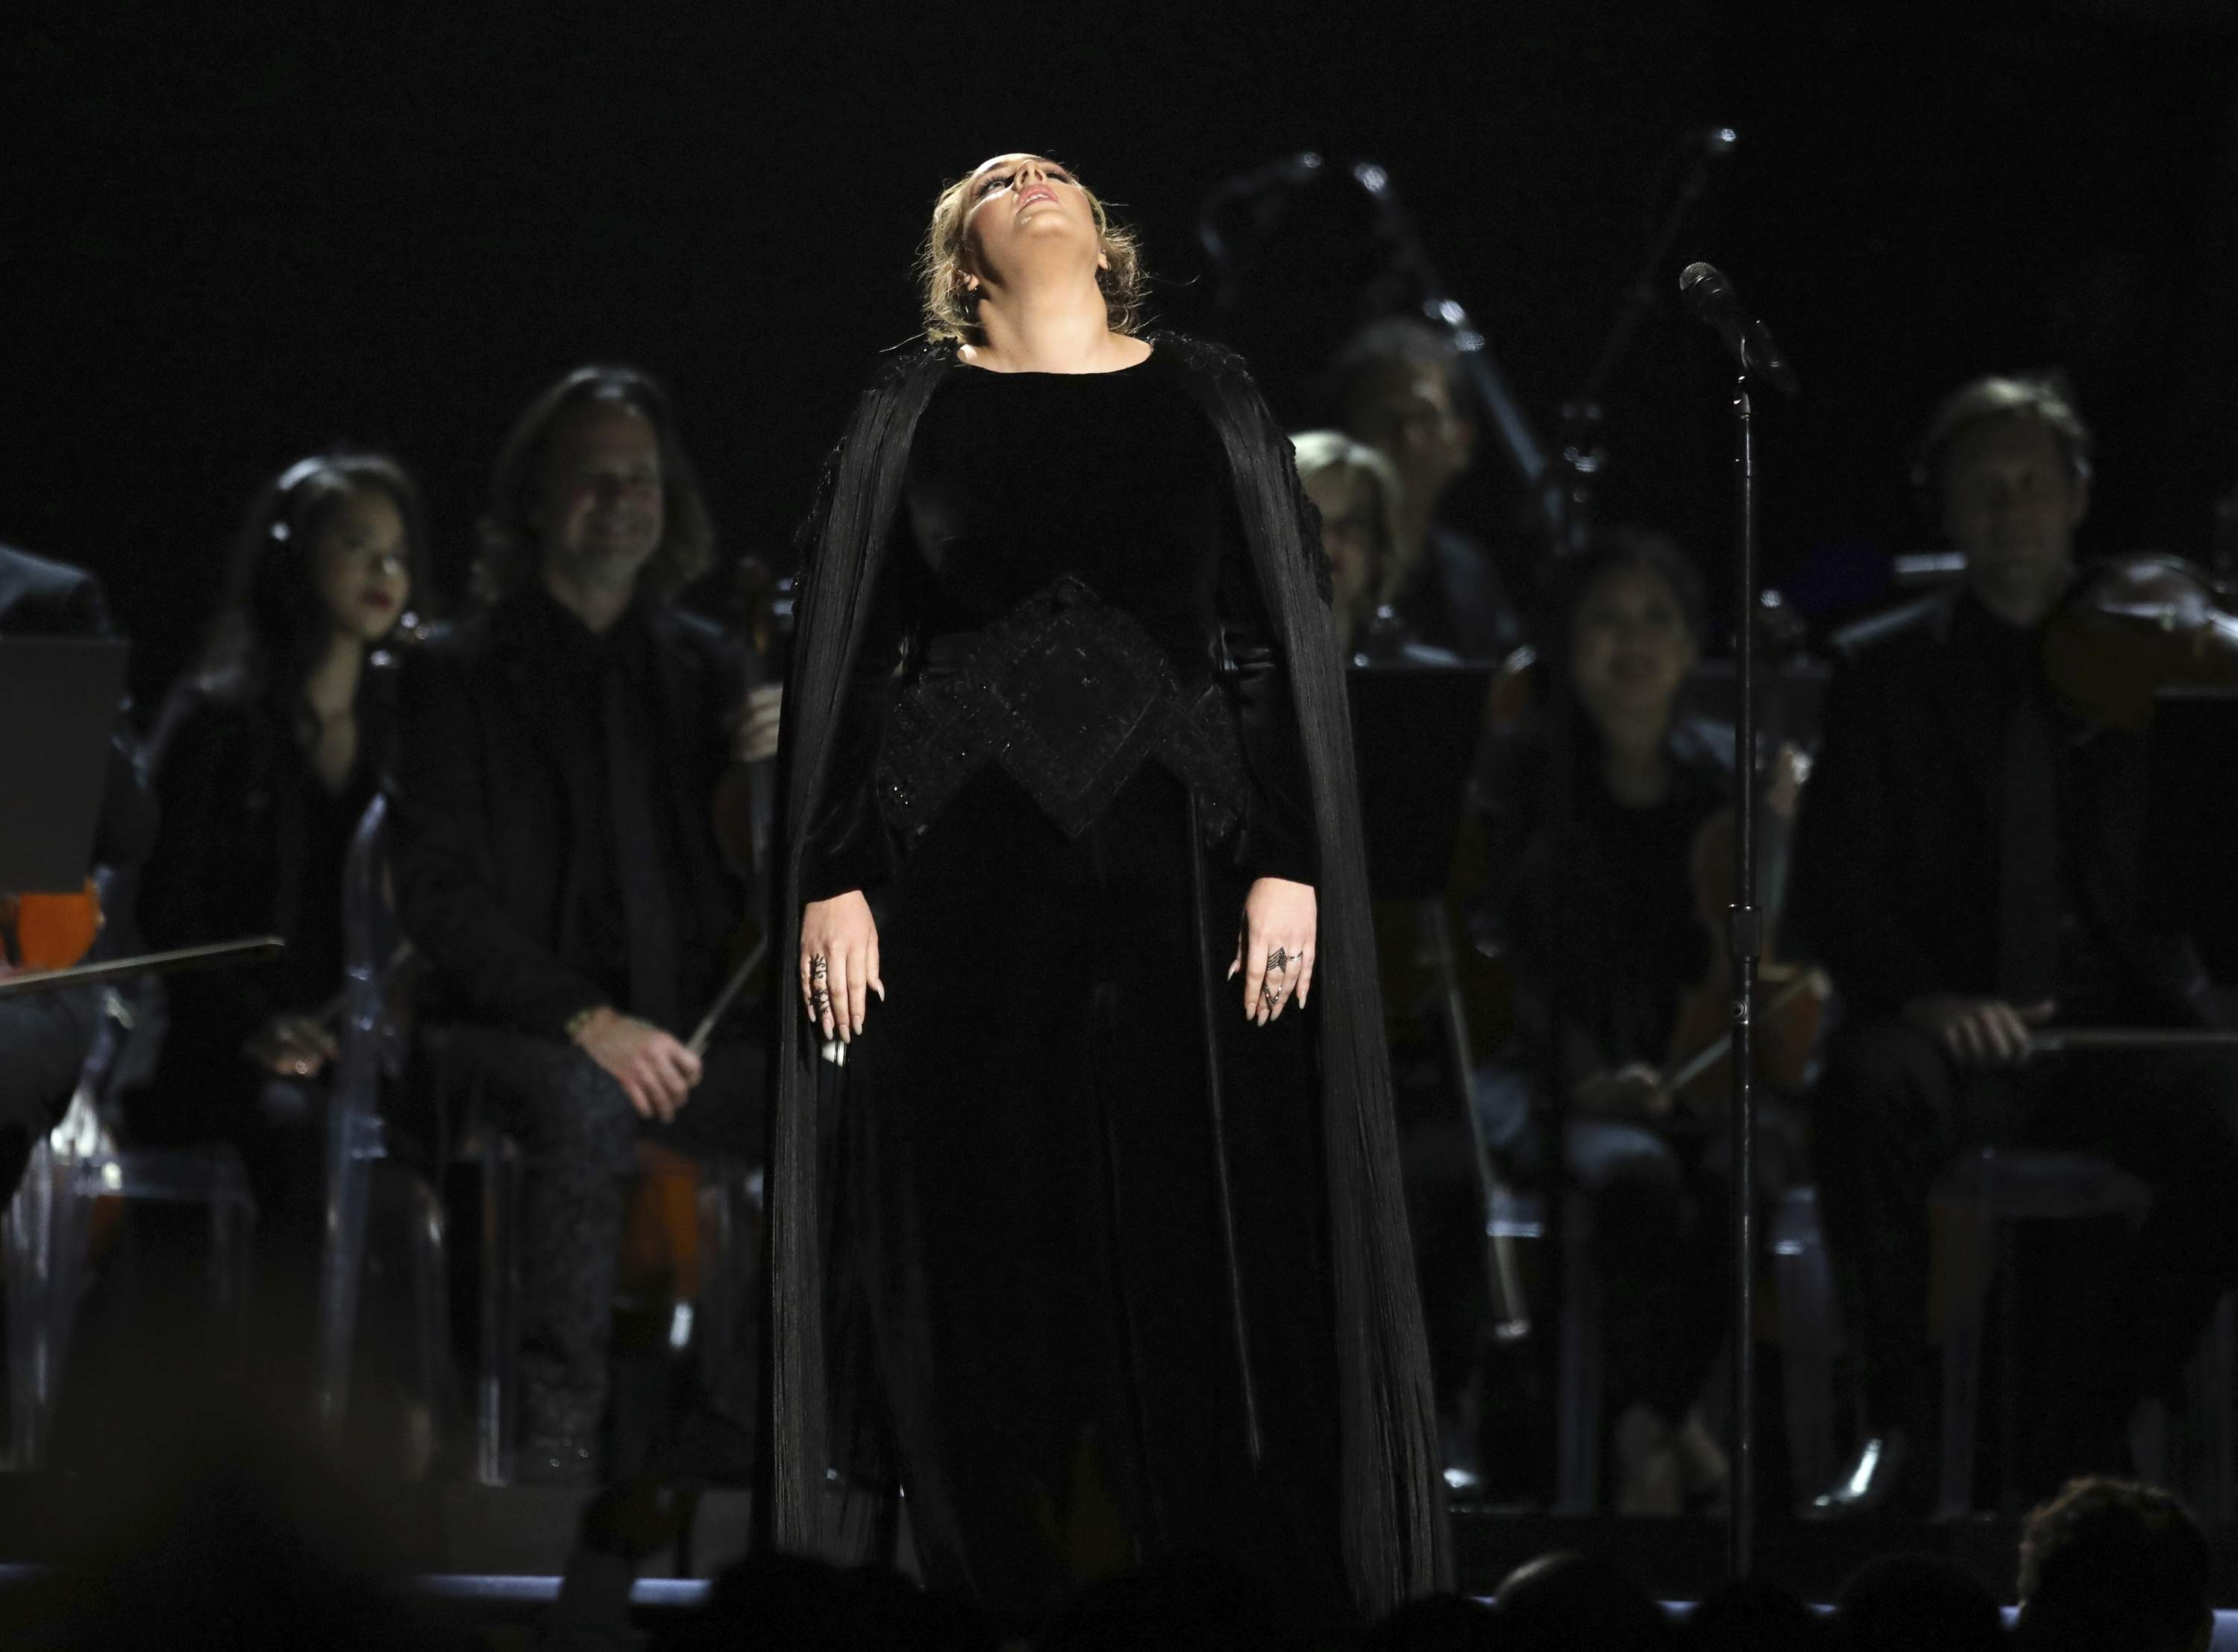 Adele reacts before restarting a performance tribute to George Michael at the 59th annual Grammy Awards on Sunday, Feb. 12, 2017, in Los Angeles. THE ASSOCIATED PRESS